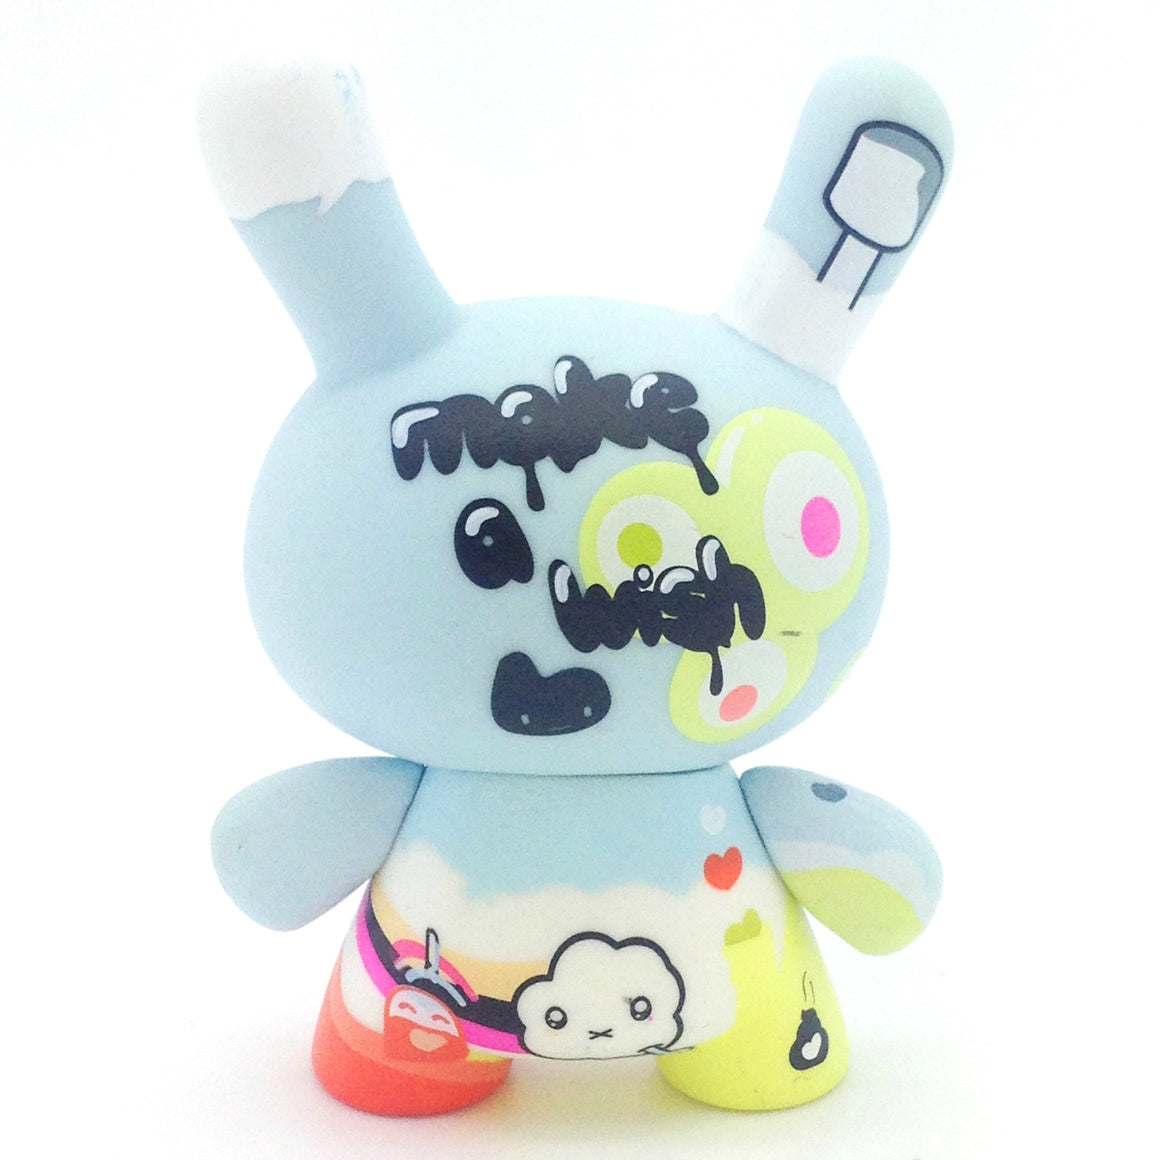 Ye Olde English Dunny Series - Julie West - Mindzai  - 1